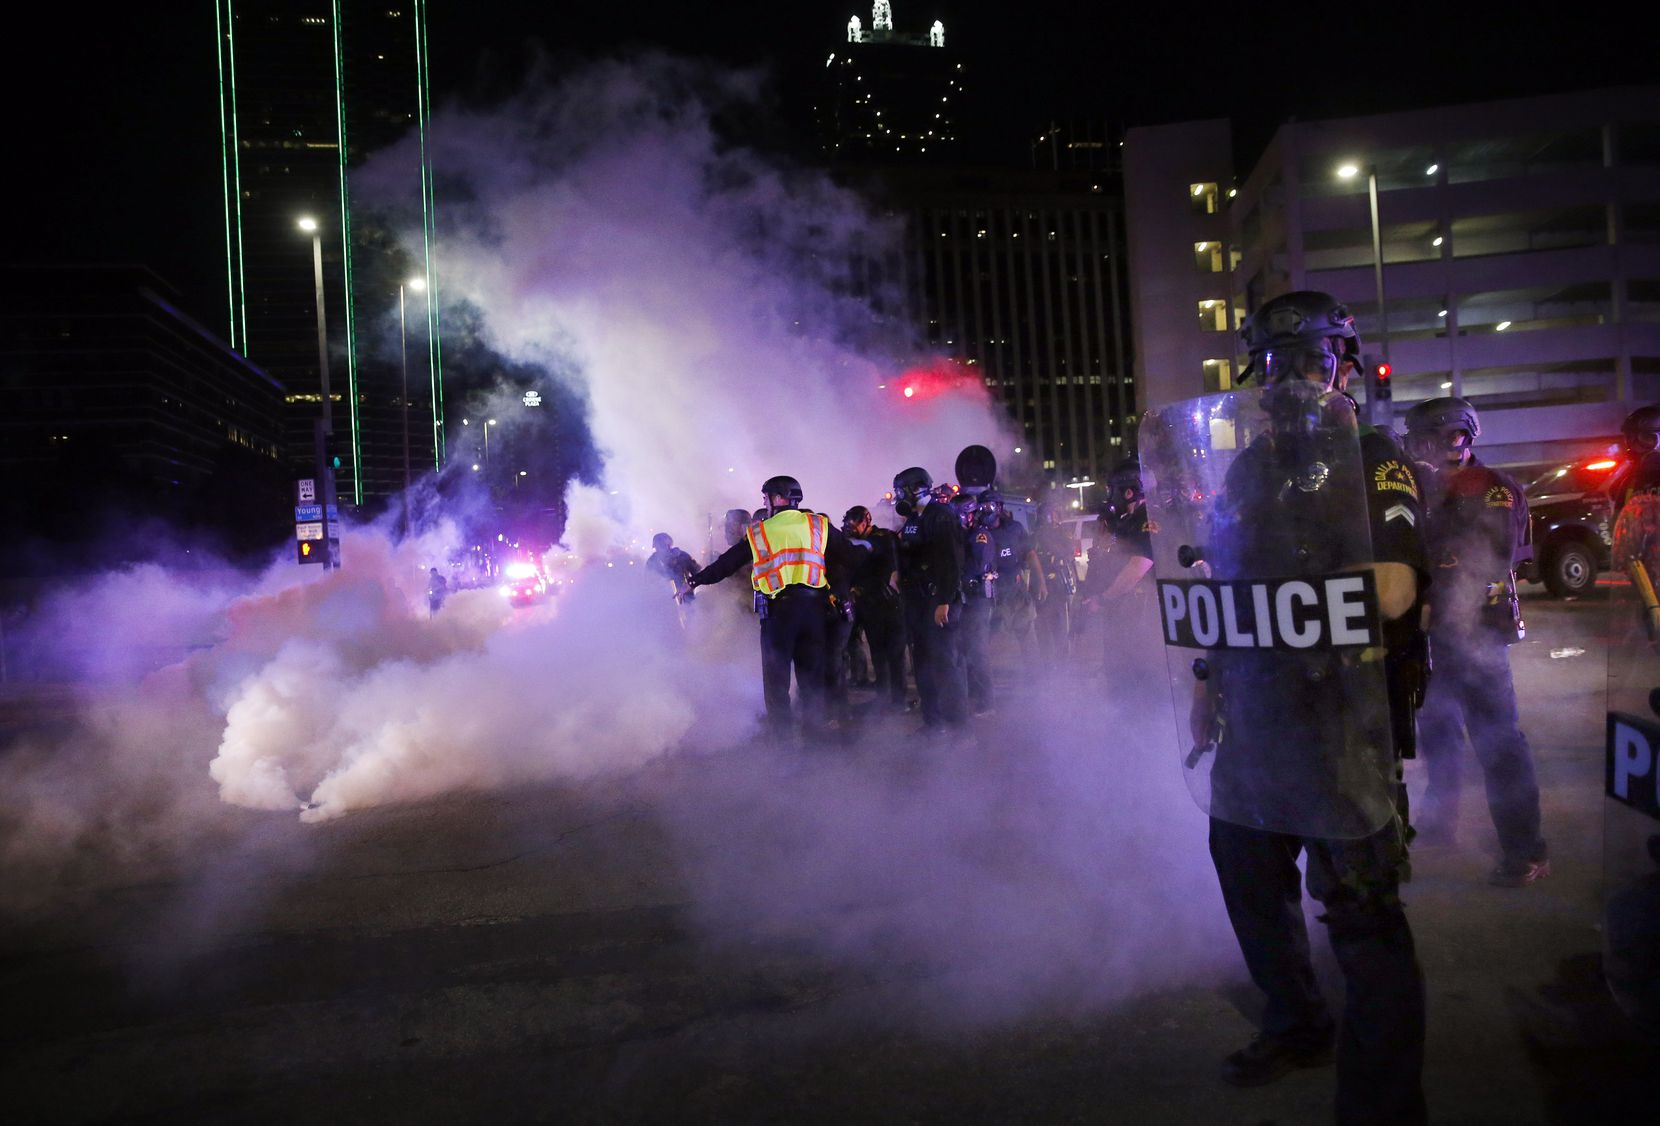 Dallas Police tactical officers fire rounds of tear gas at protestors at Young St. and S. Griffin St. in downtown Dallas, Friday, May 29, 2020. People were marching in protest of the in-custody death of George Floyd when they confronted Dallas Police tactical officers and tear gas was fired.